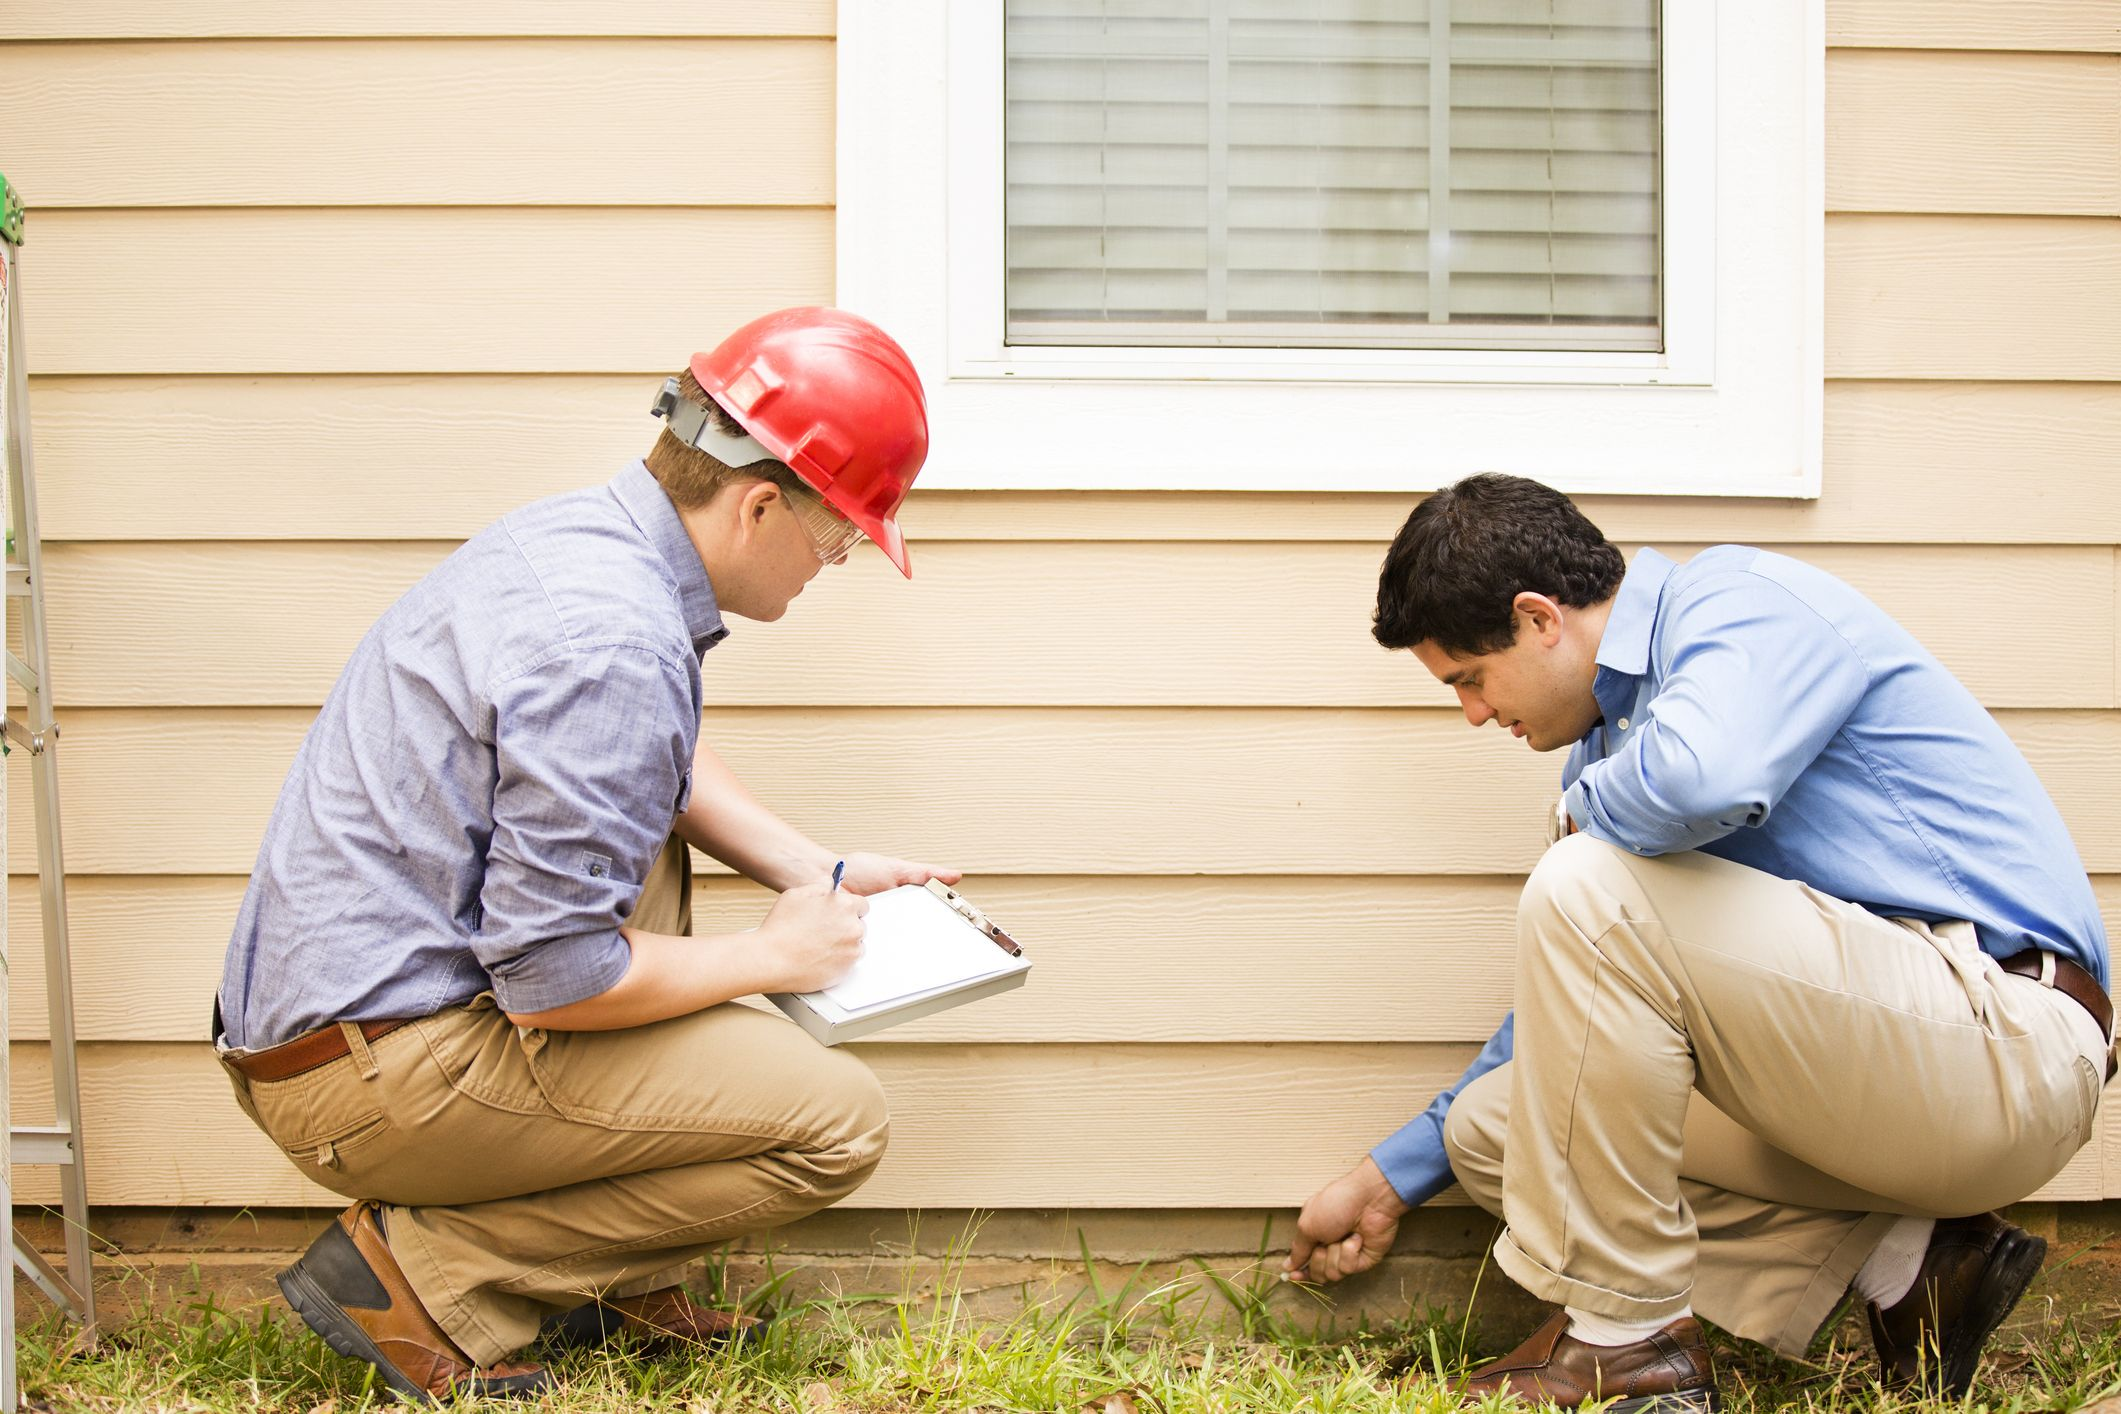 DIY Home Inspection Checklist to Become Your Own Home Inspector